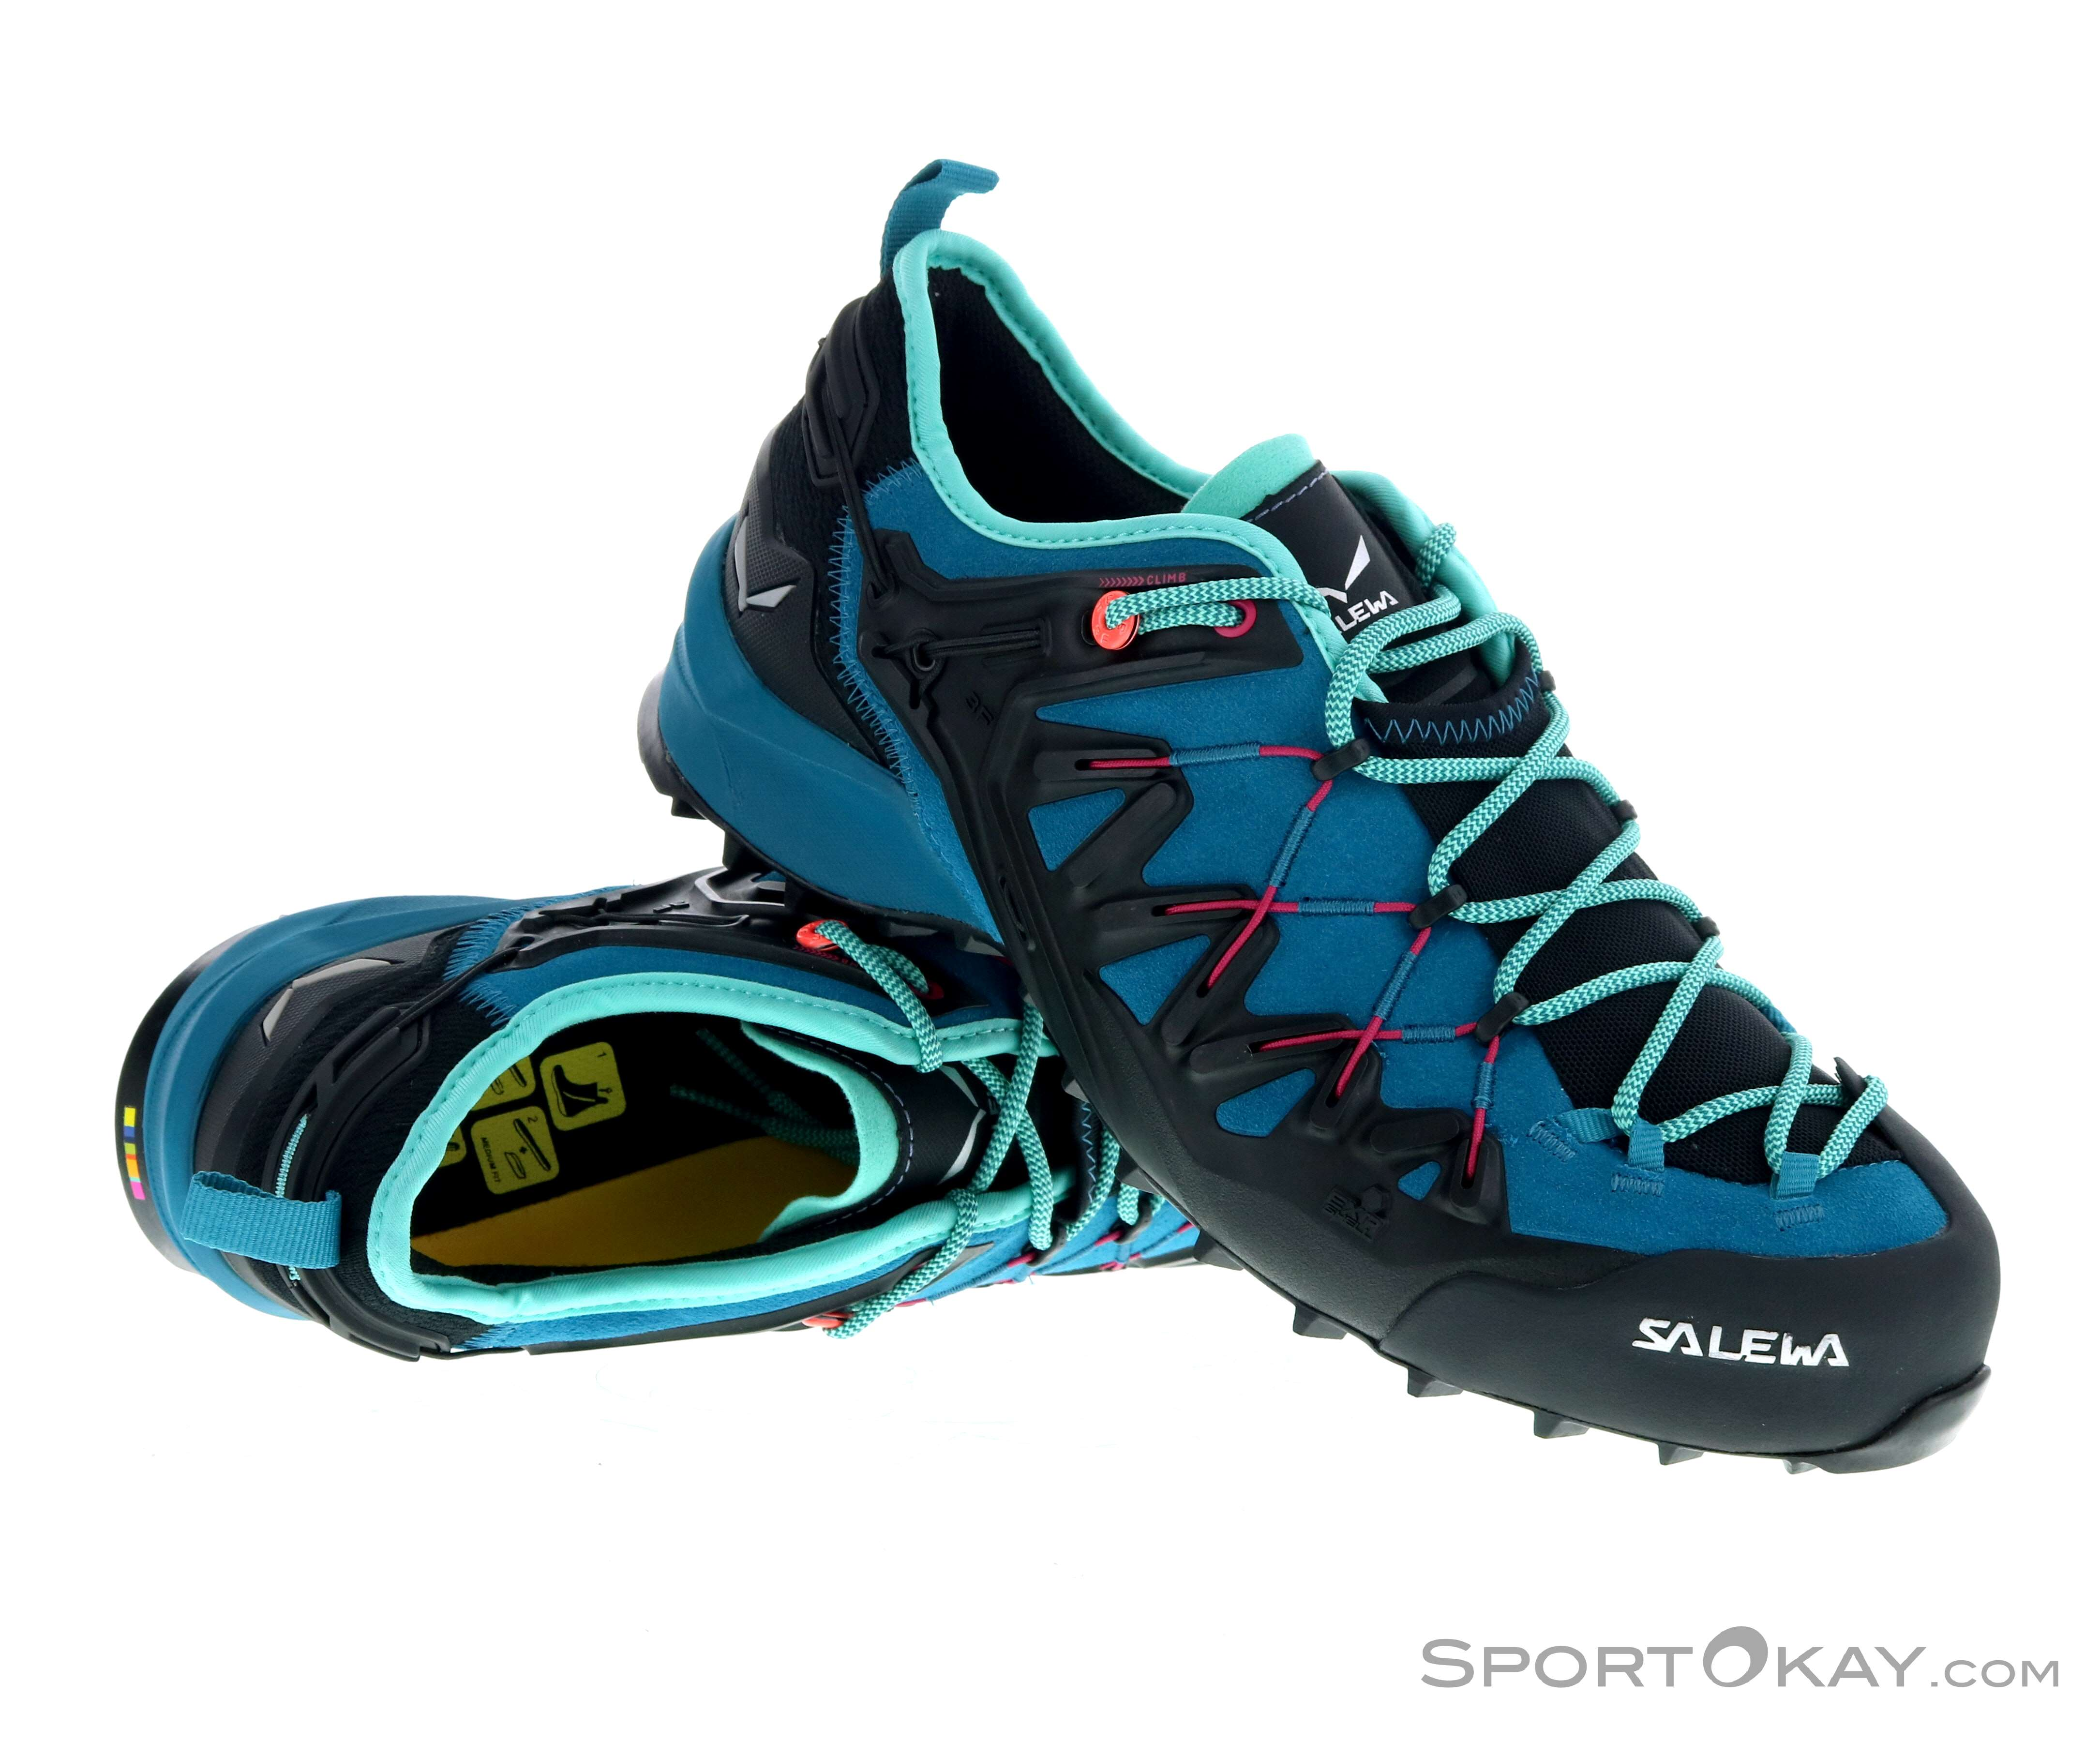 Salewa Mens Wildfire Edge Walking Shoes Black Blue Sports Outdoors Breathable